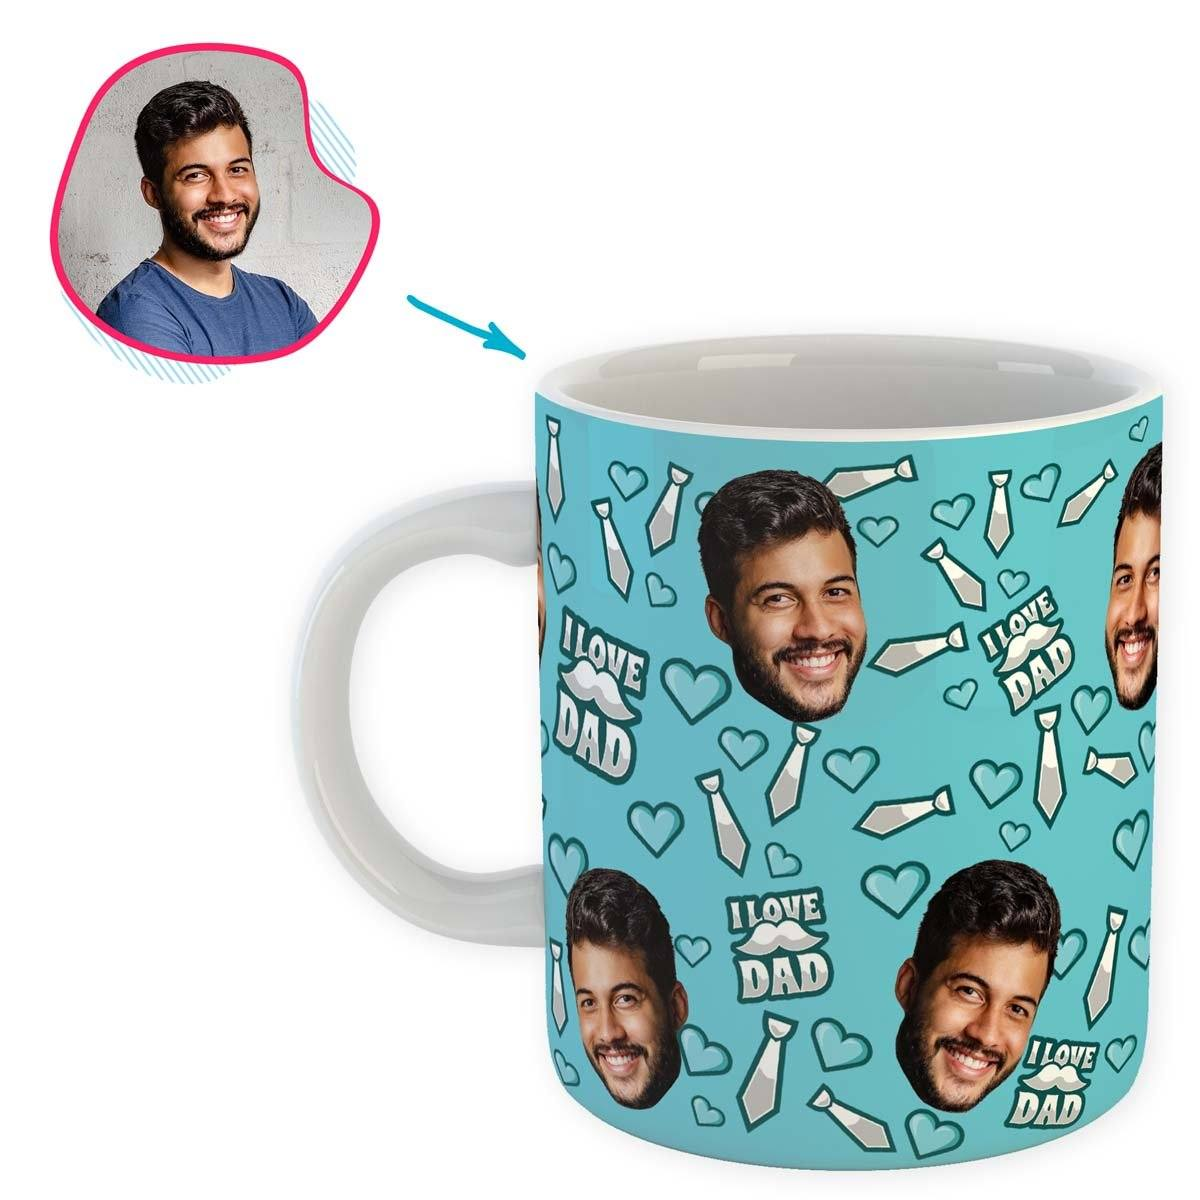 blue Love Dad mug personalized with photo of face printed on it